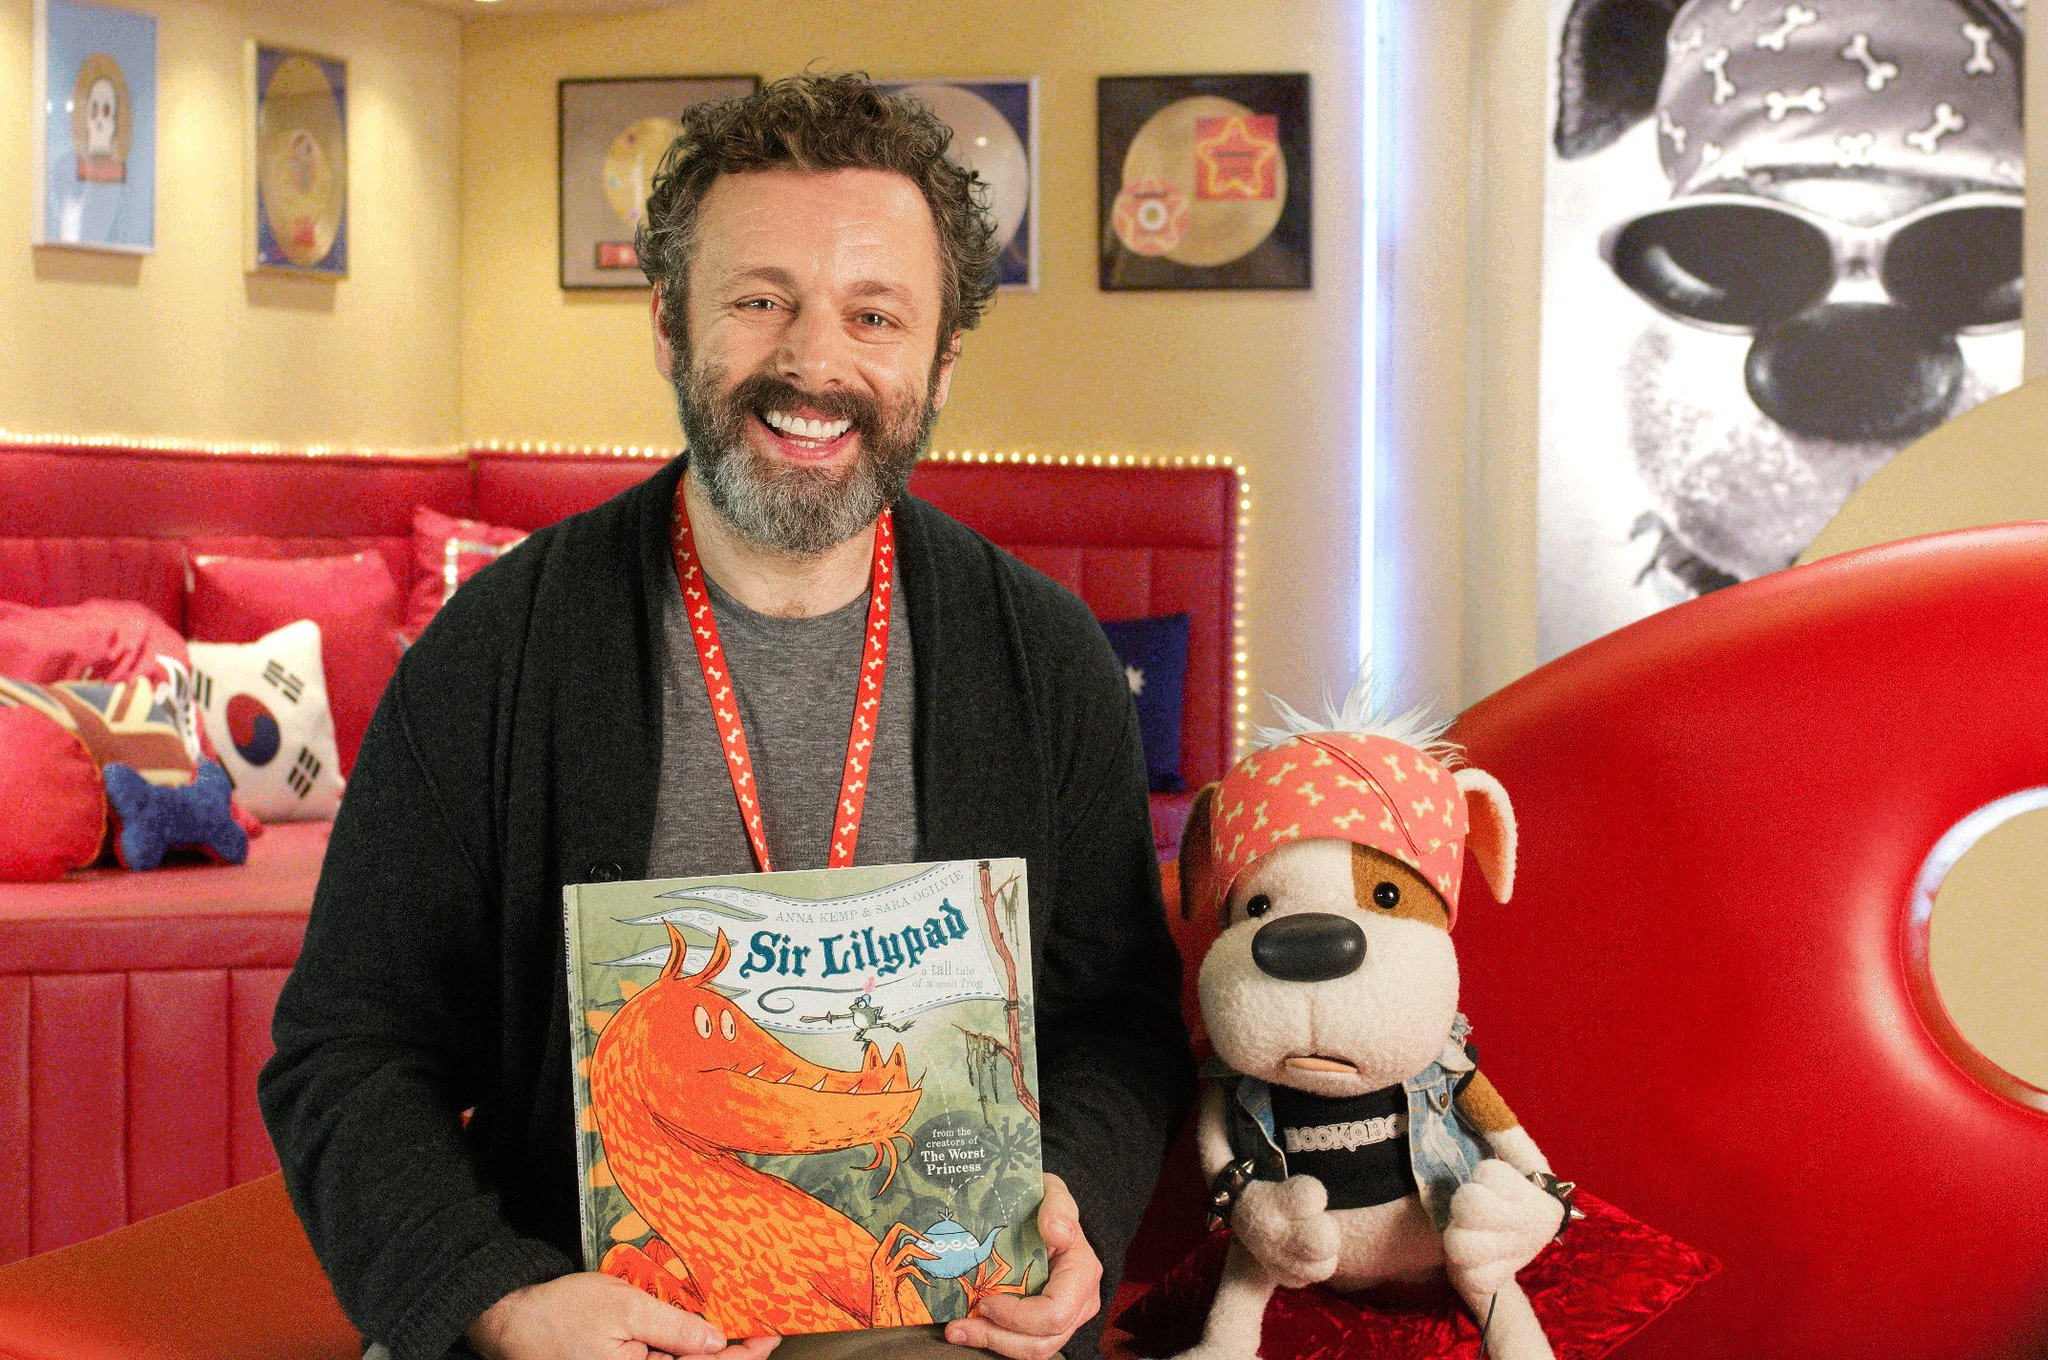 RT @CBCKids: Michael Sheen reads with #Bookaboo! Catch it online here! https://t.co/OQnxjgQ6XP @michaelsheen https://t.co/5ppcCSYlw2